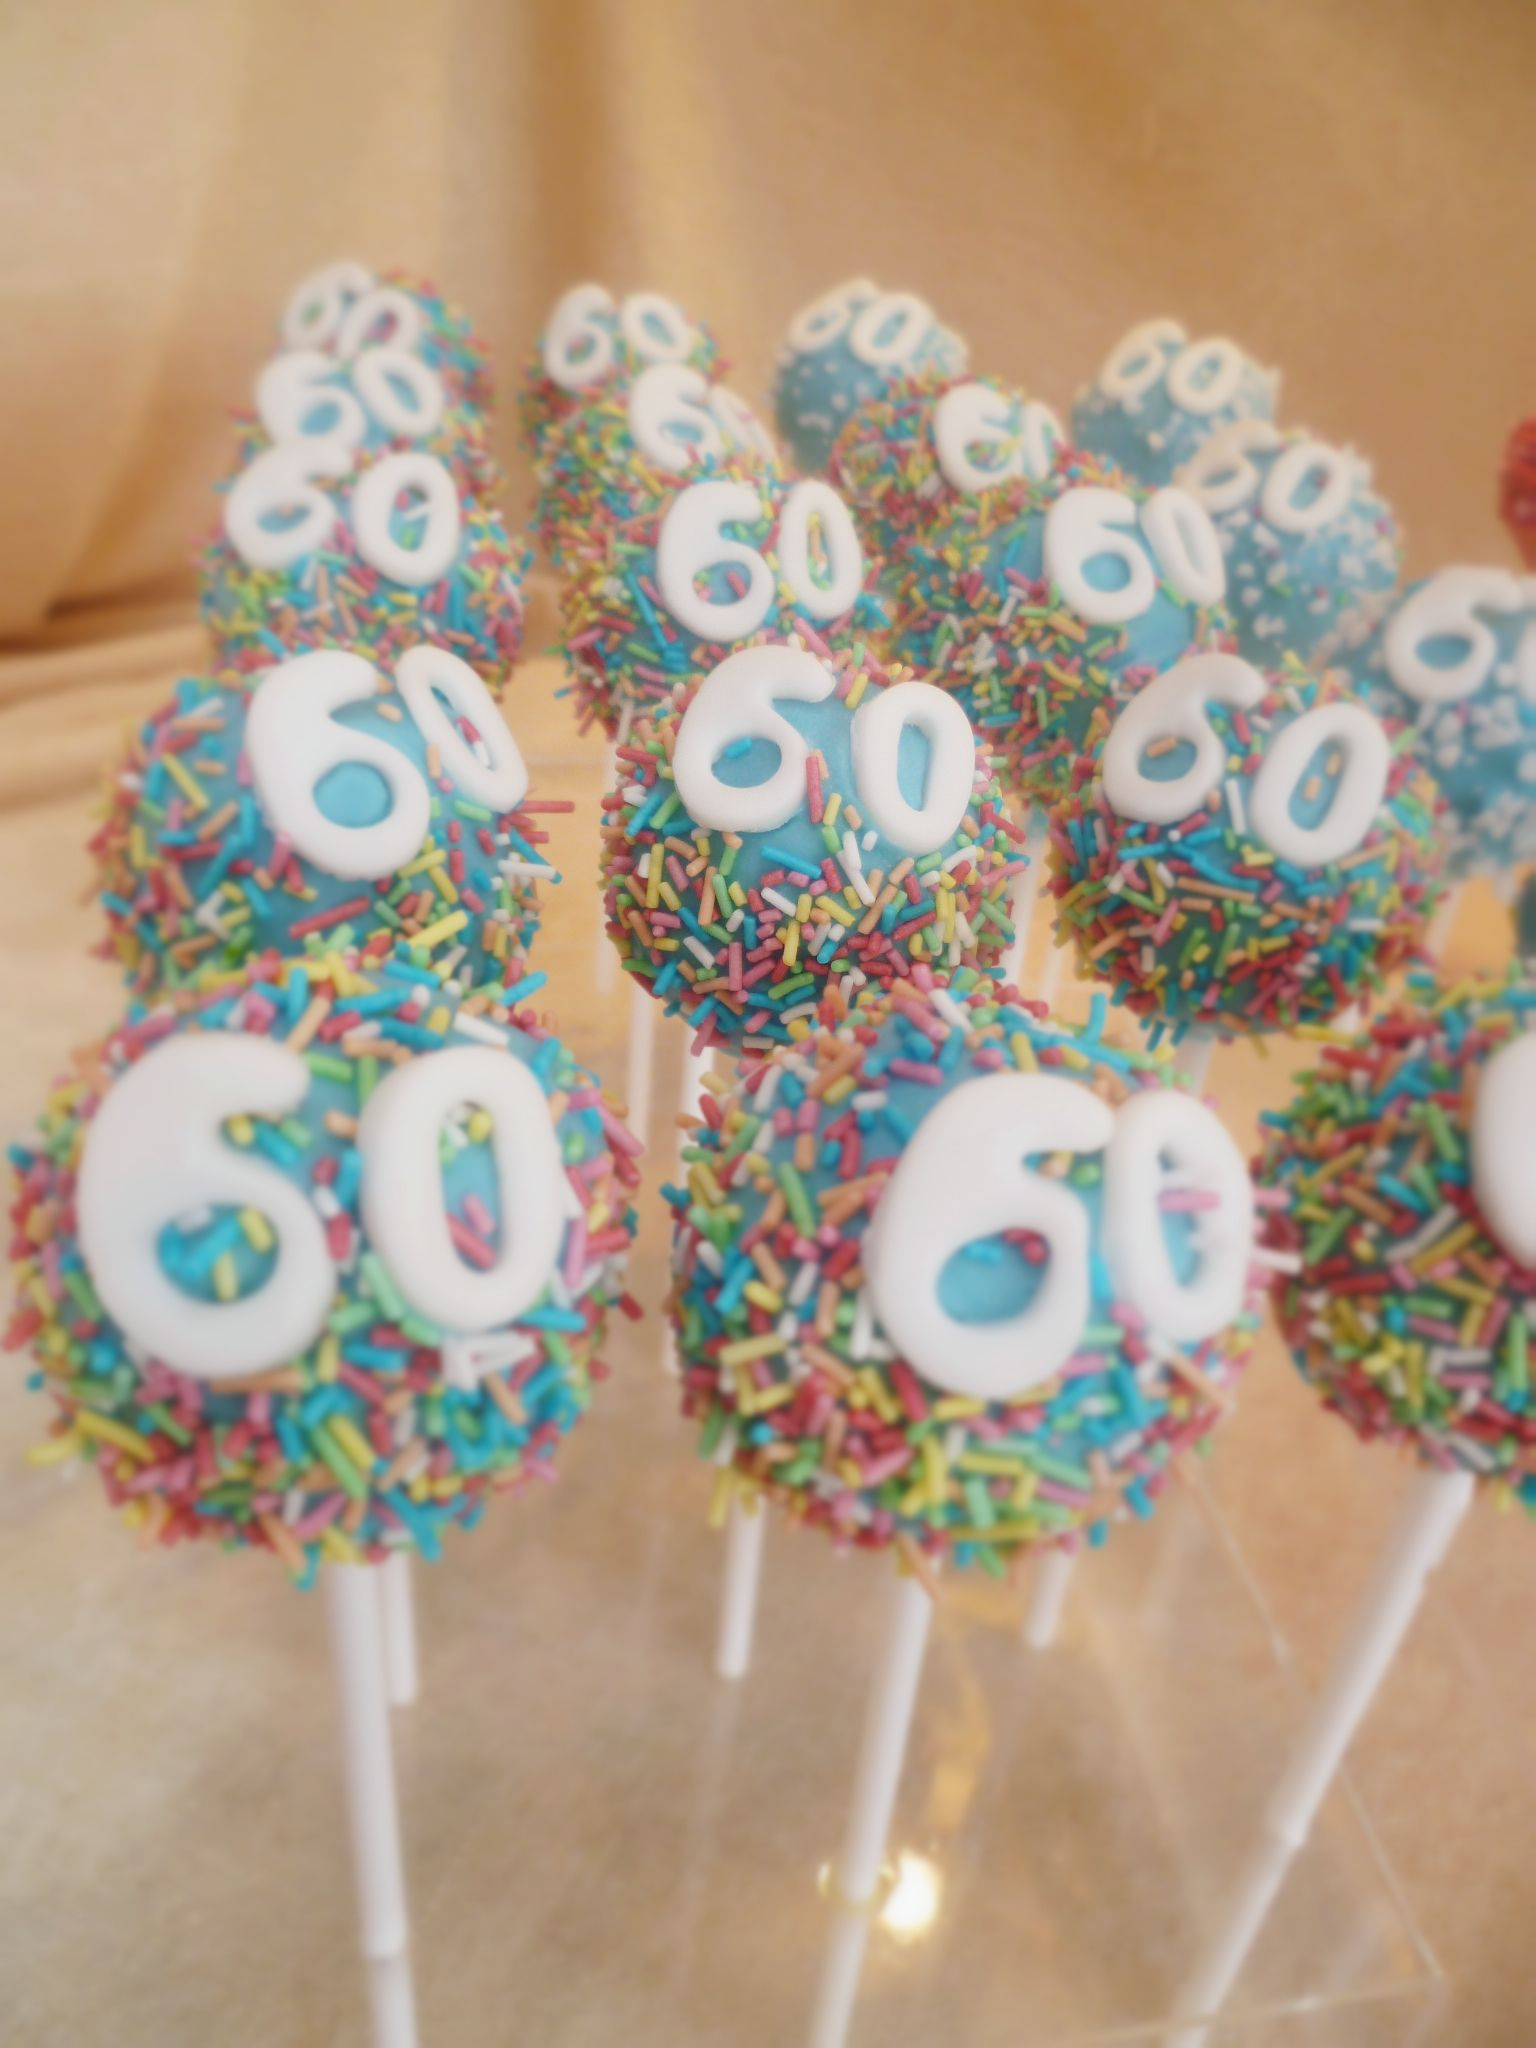 60th Birthday Cake Pops Make That A Bit More Special Check Out At Thecakeshakcouk